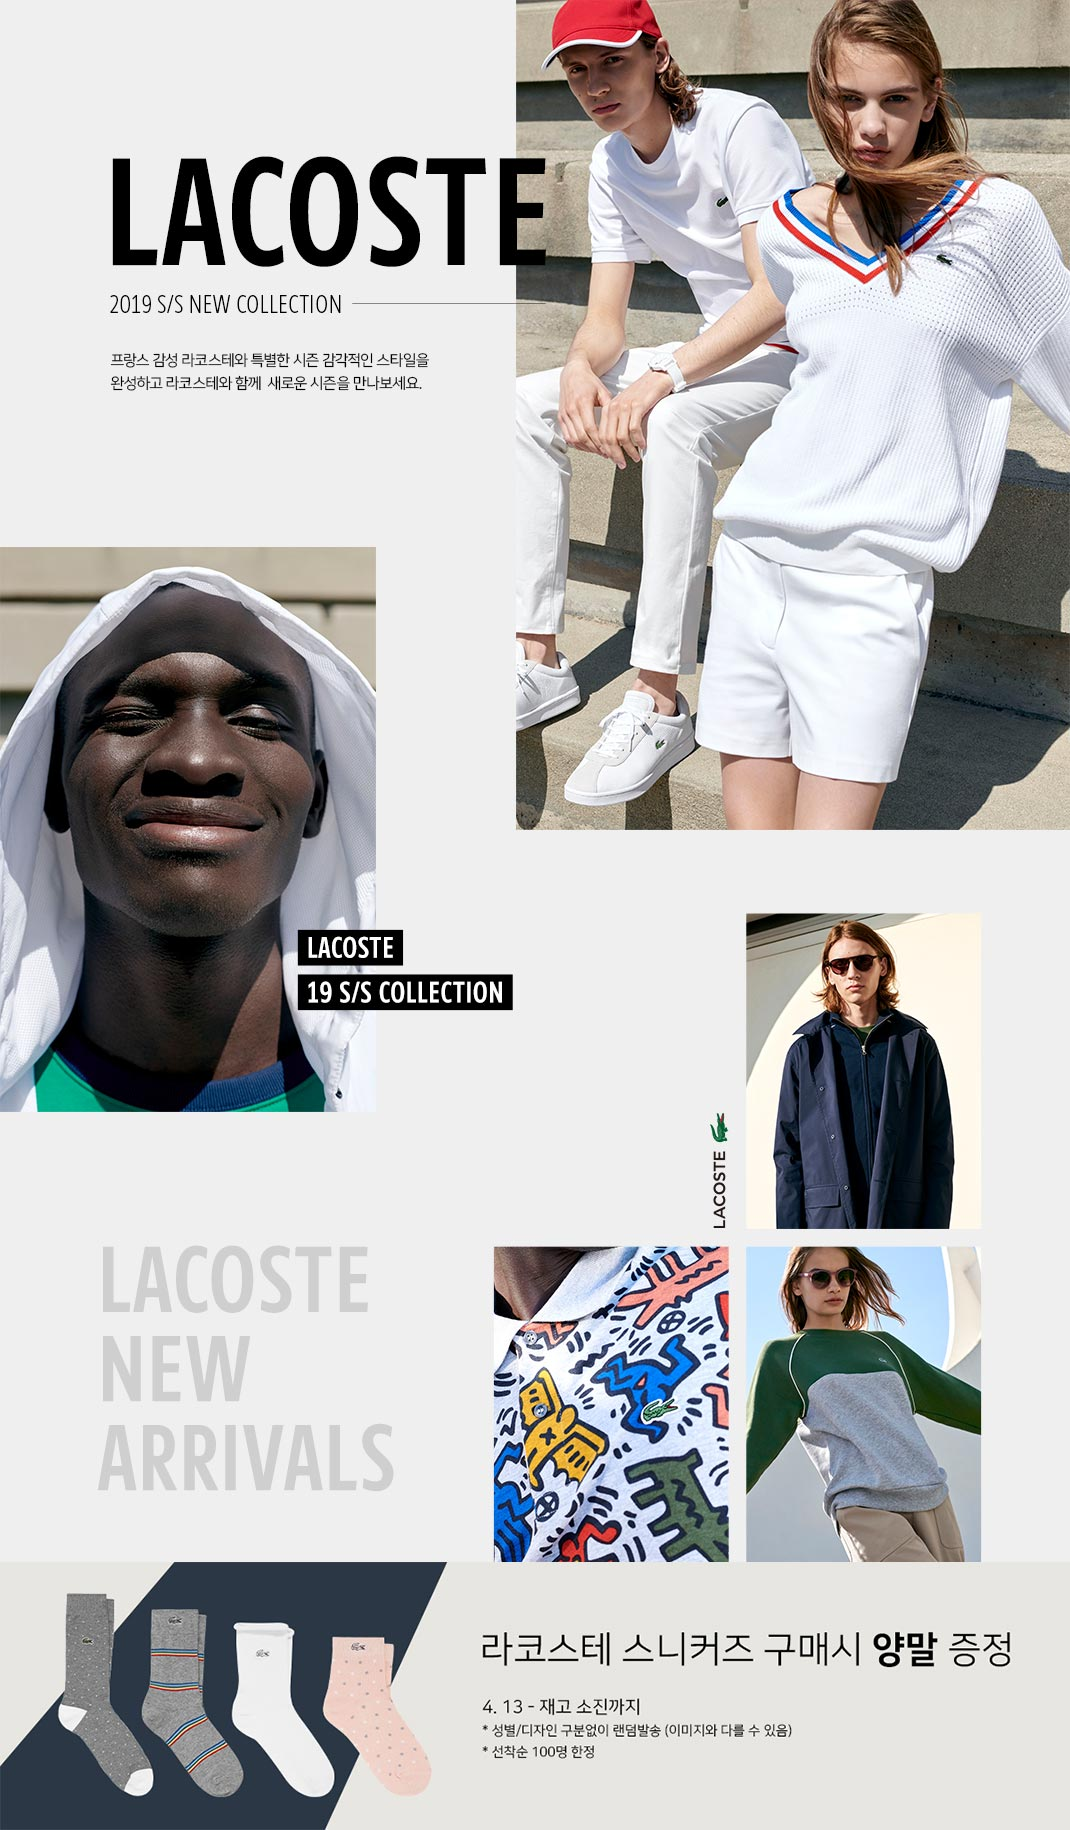 LACOSTE 19 S/S NEW COLLECTION!